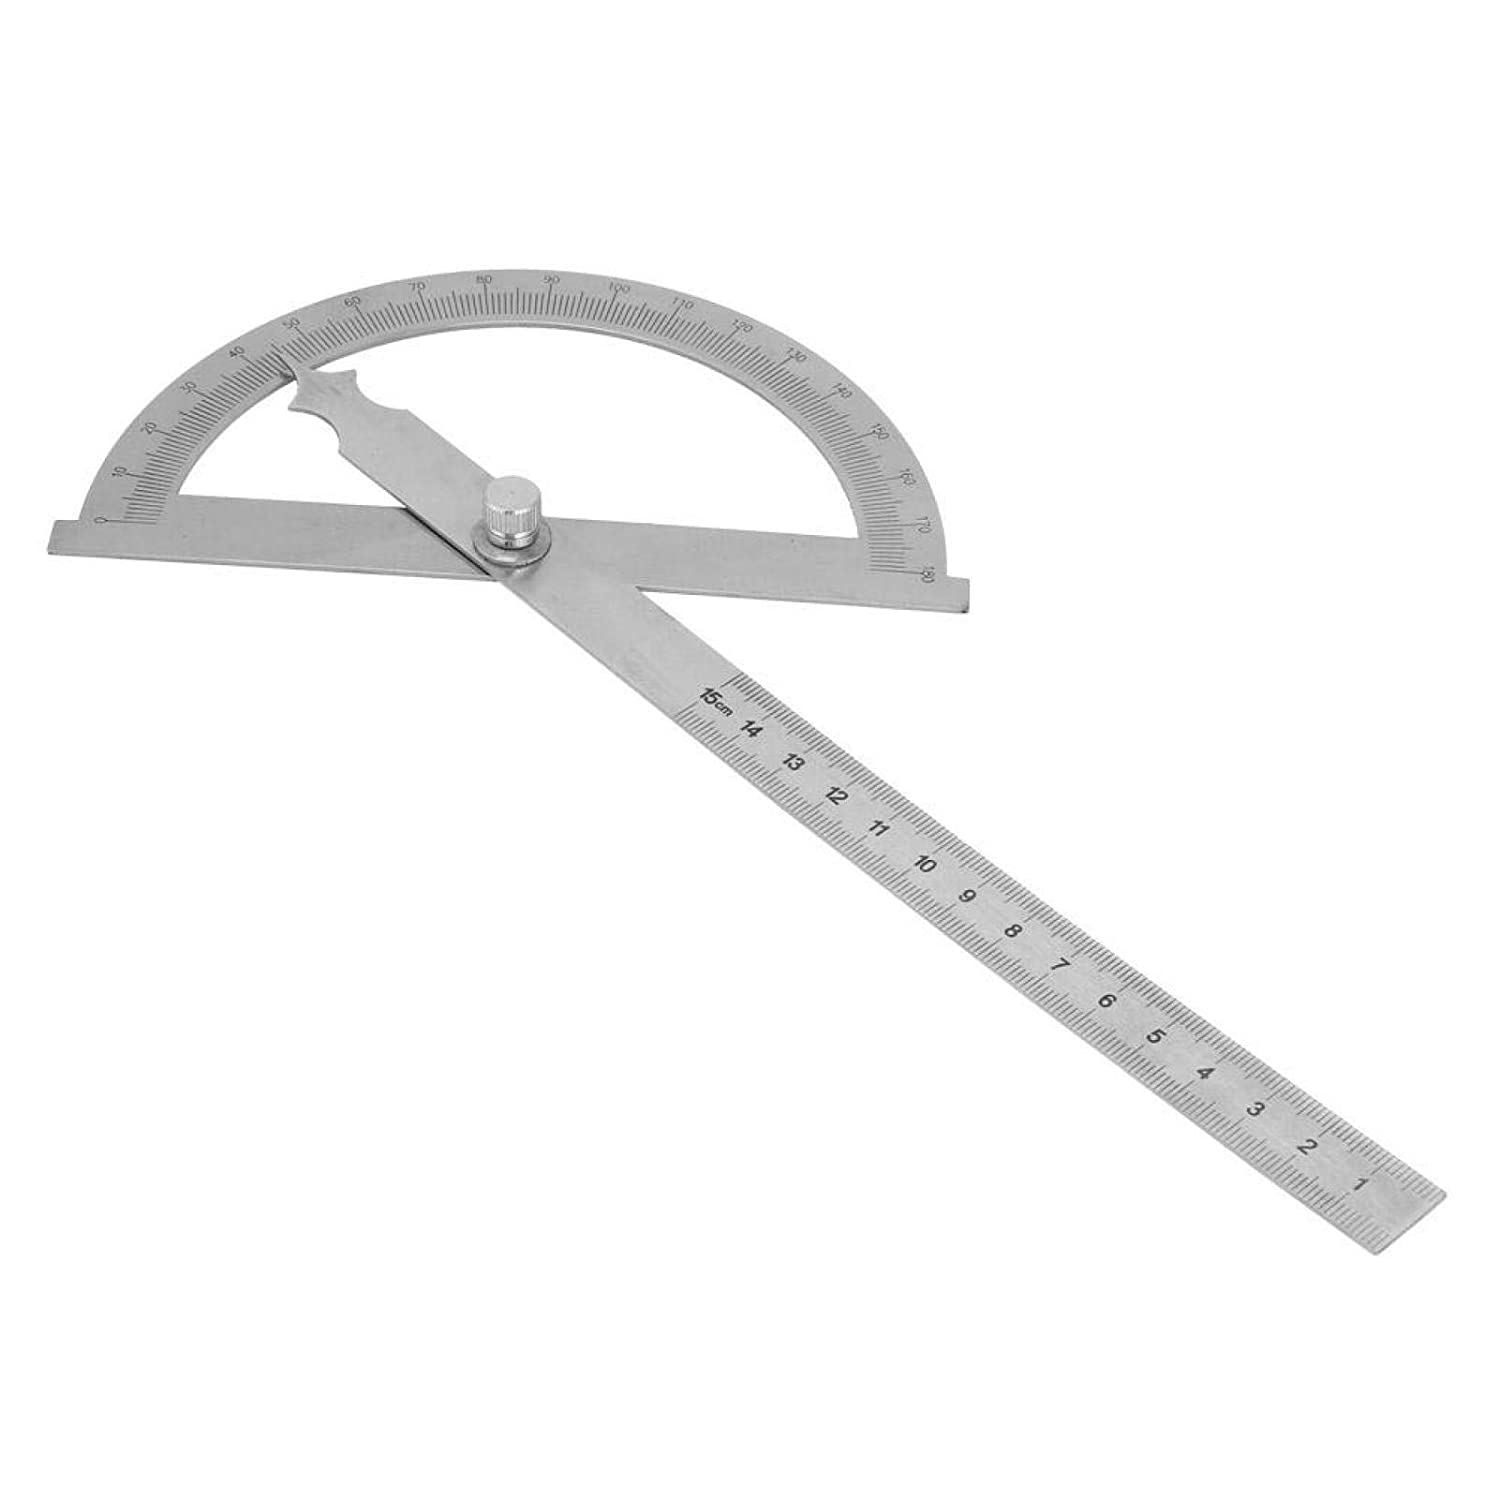 1Pcs 100% quality warranty! Rotary Protractor 1mm for Selling and selling Degree Steel Stainless